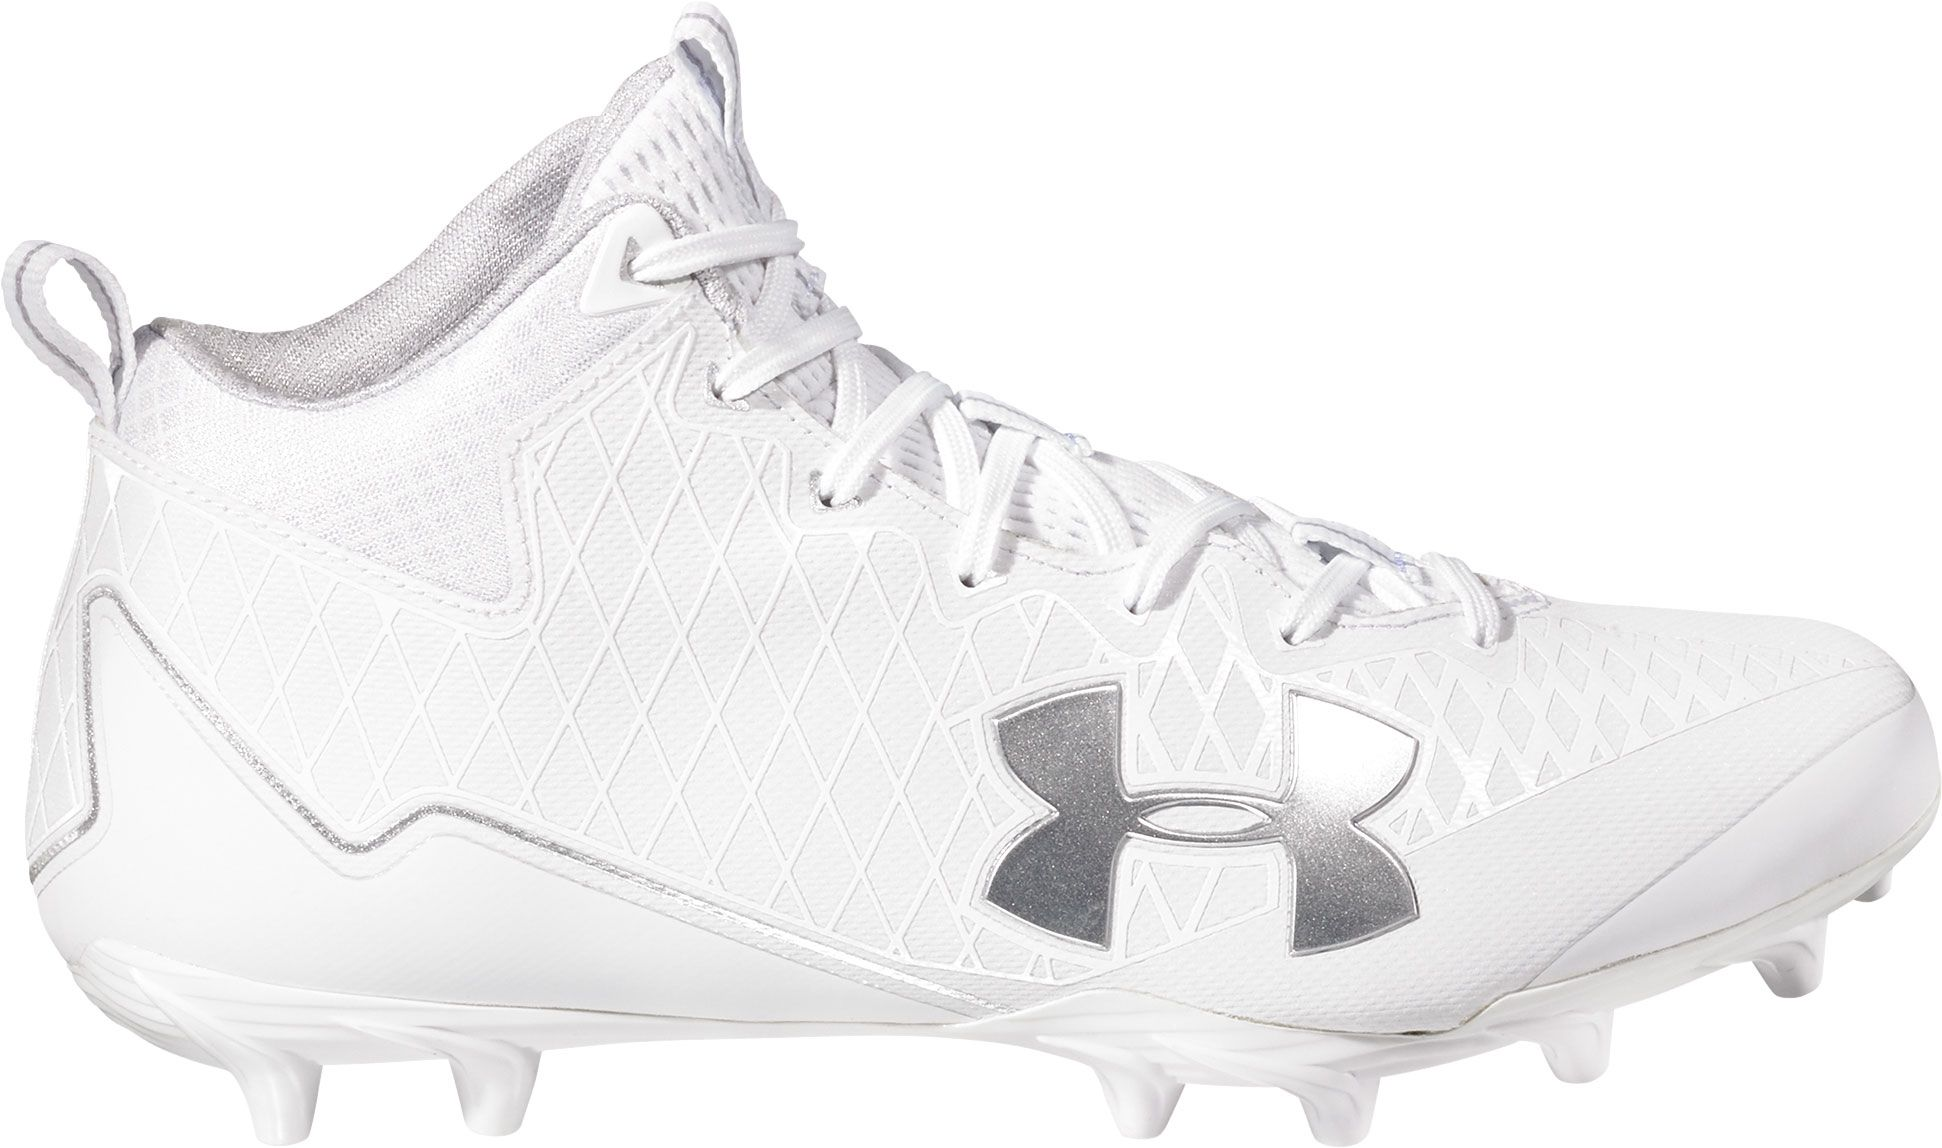 b52a7ae2580a lovely Under Armour Mens Banshee Mid MC Lacrosse Cleats DICKS Sporting Goods